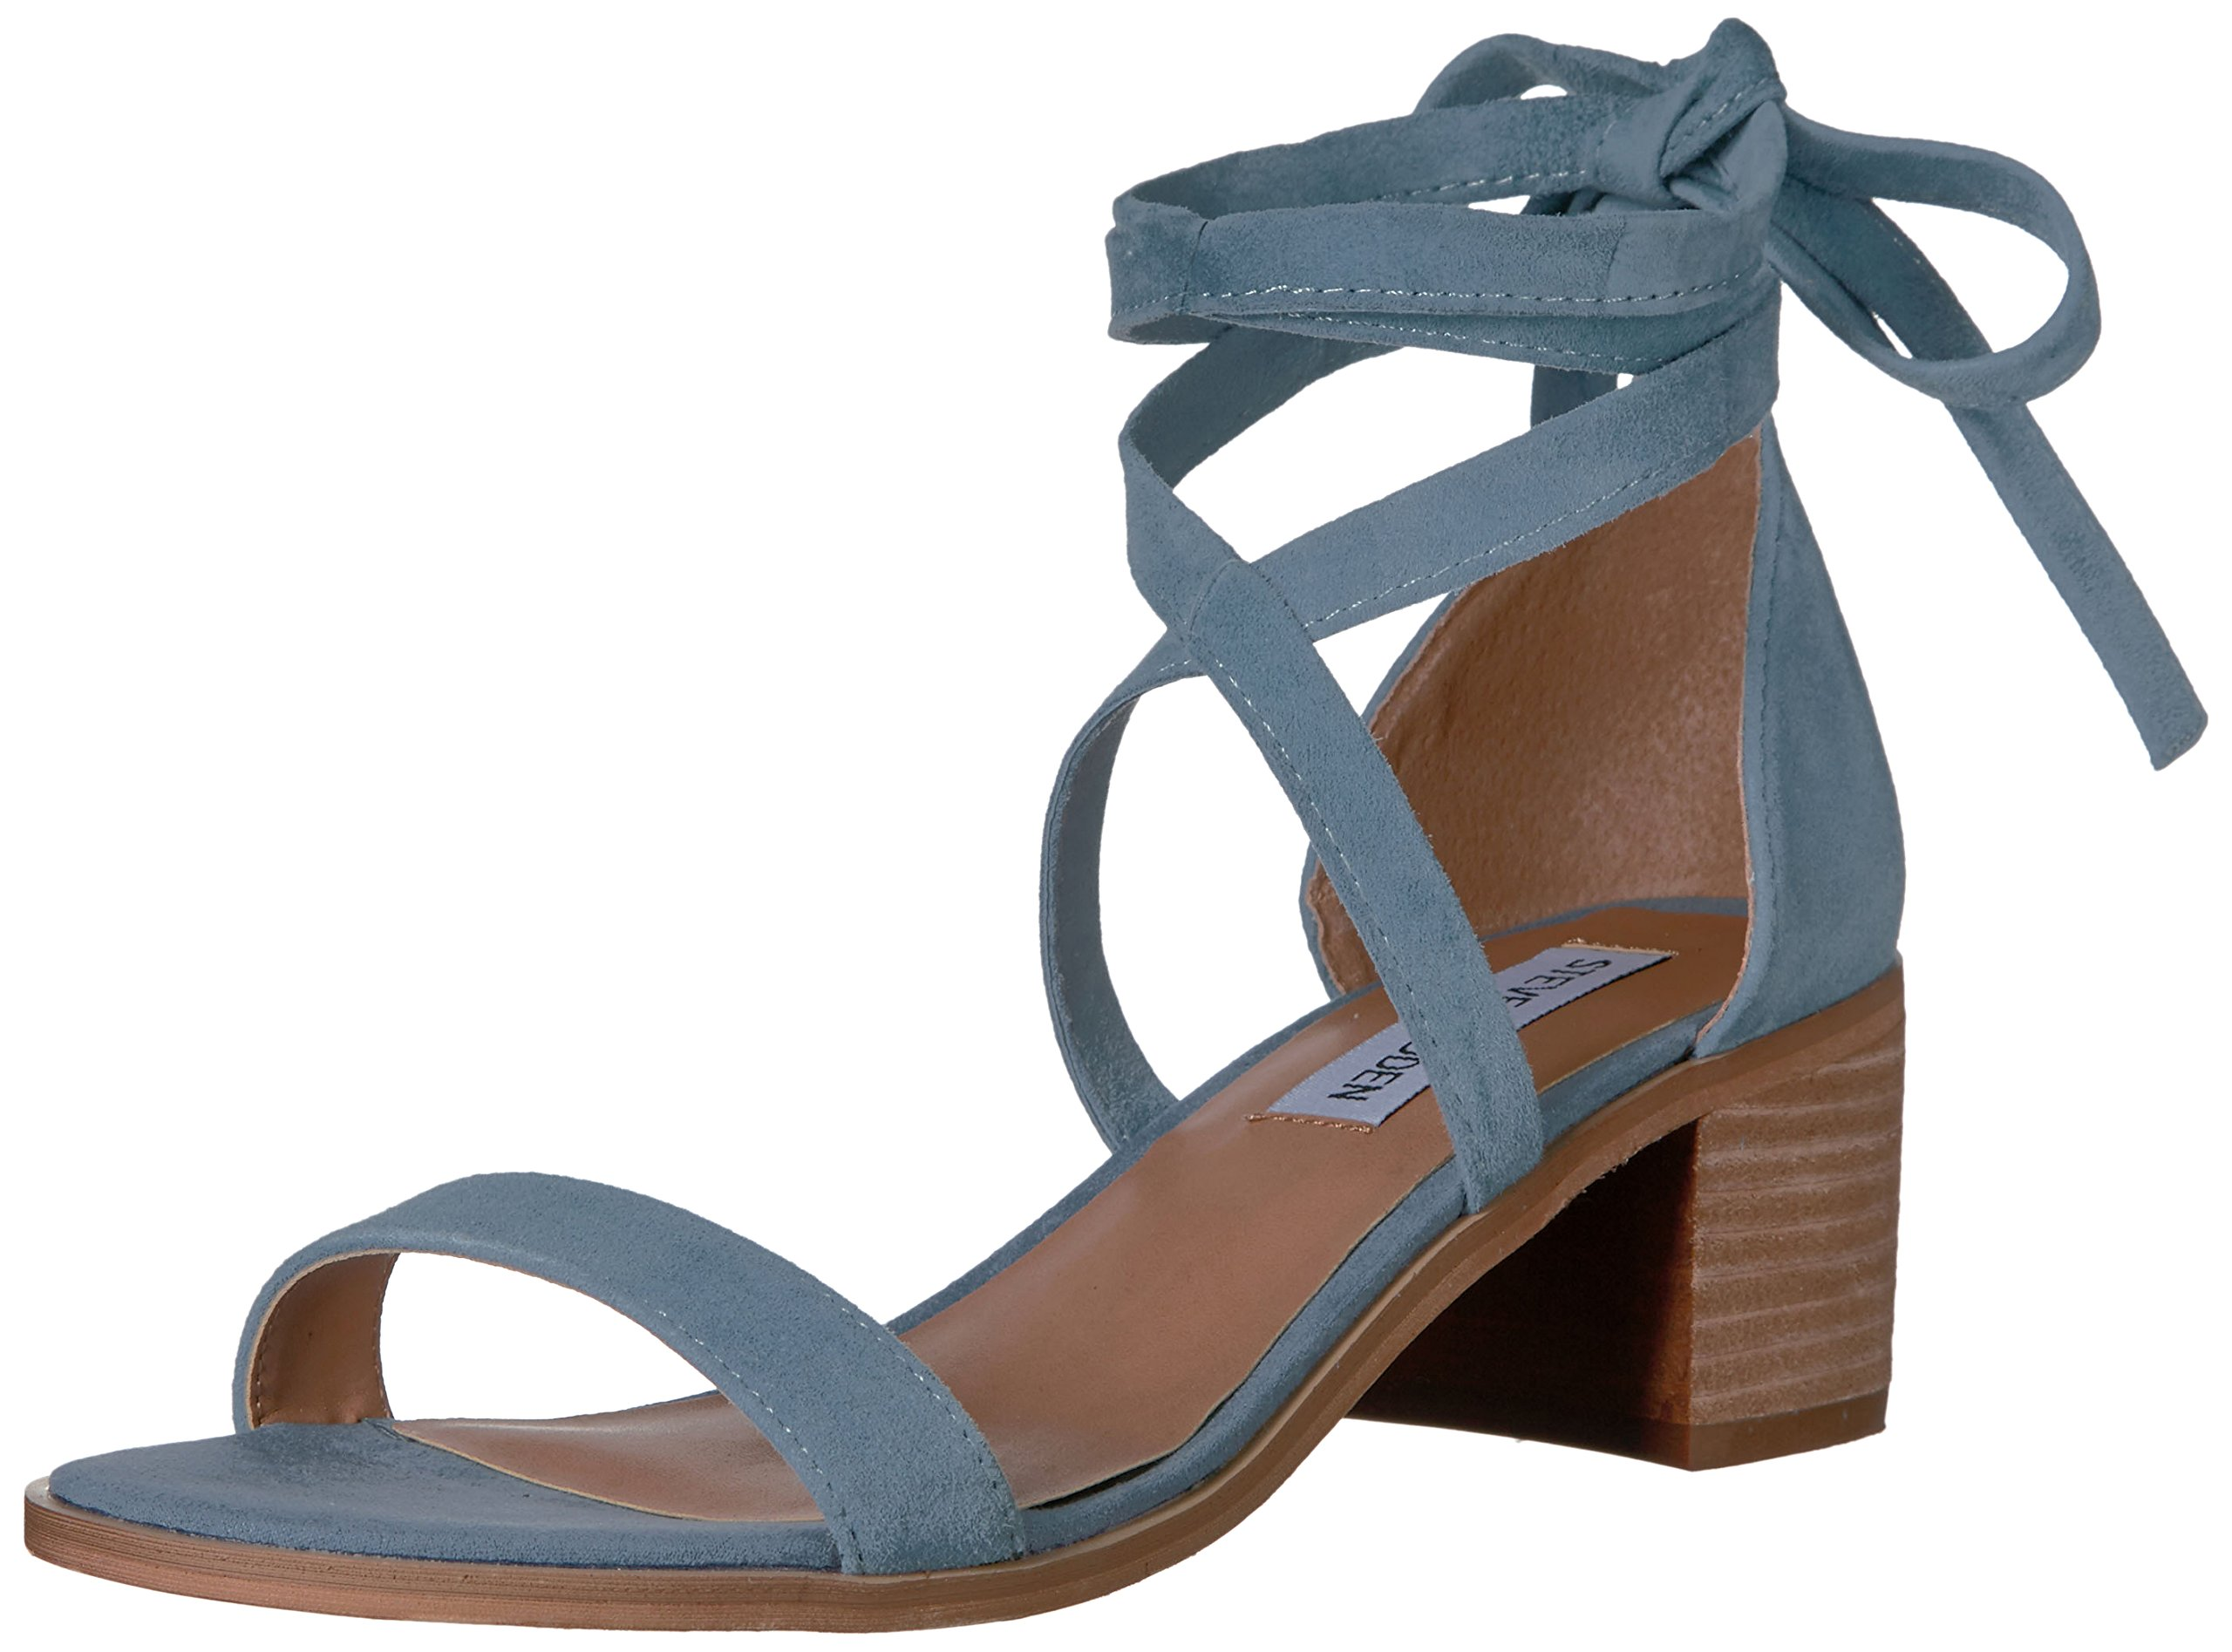 Steve Madden Women's Rizzaa Dress Sandal, Light Blue, 6.5 M US product image